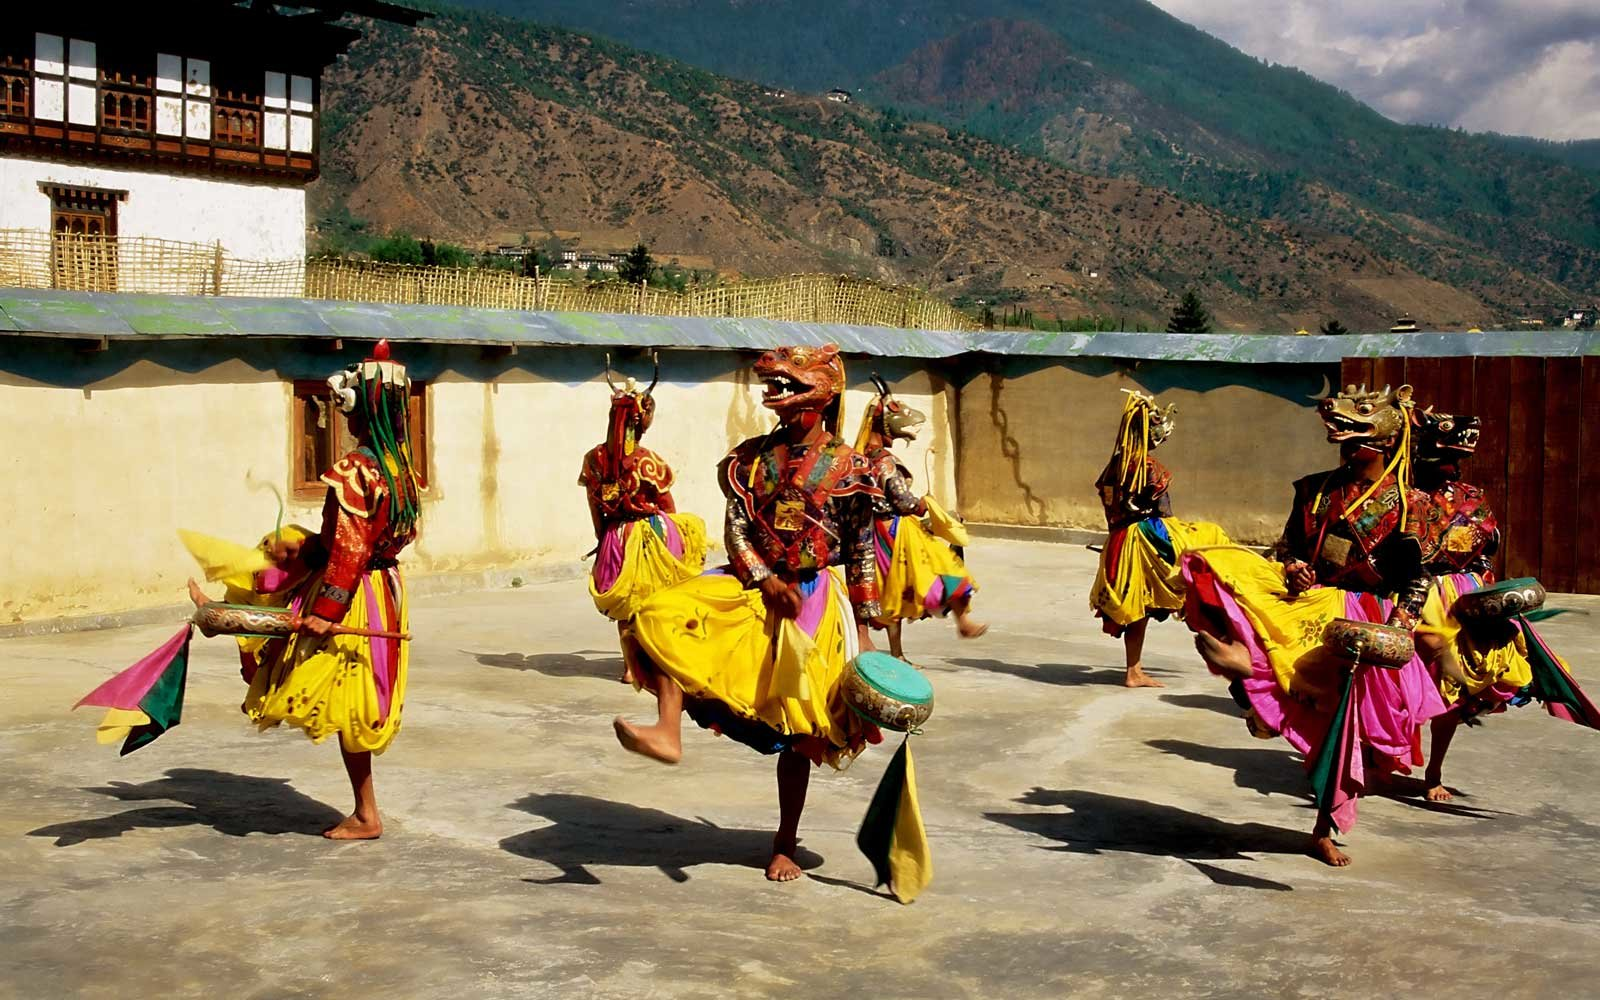 thimpu-bhutan-dancers-WBAFRIENDLY0217.jpg